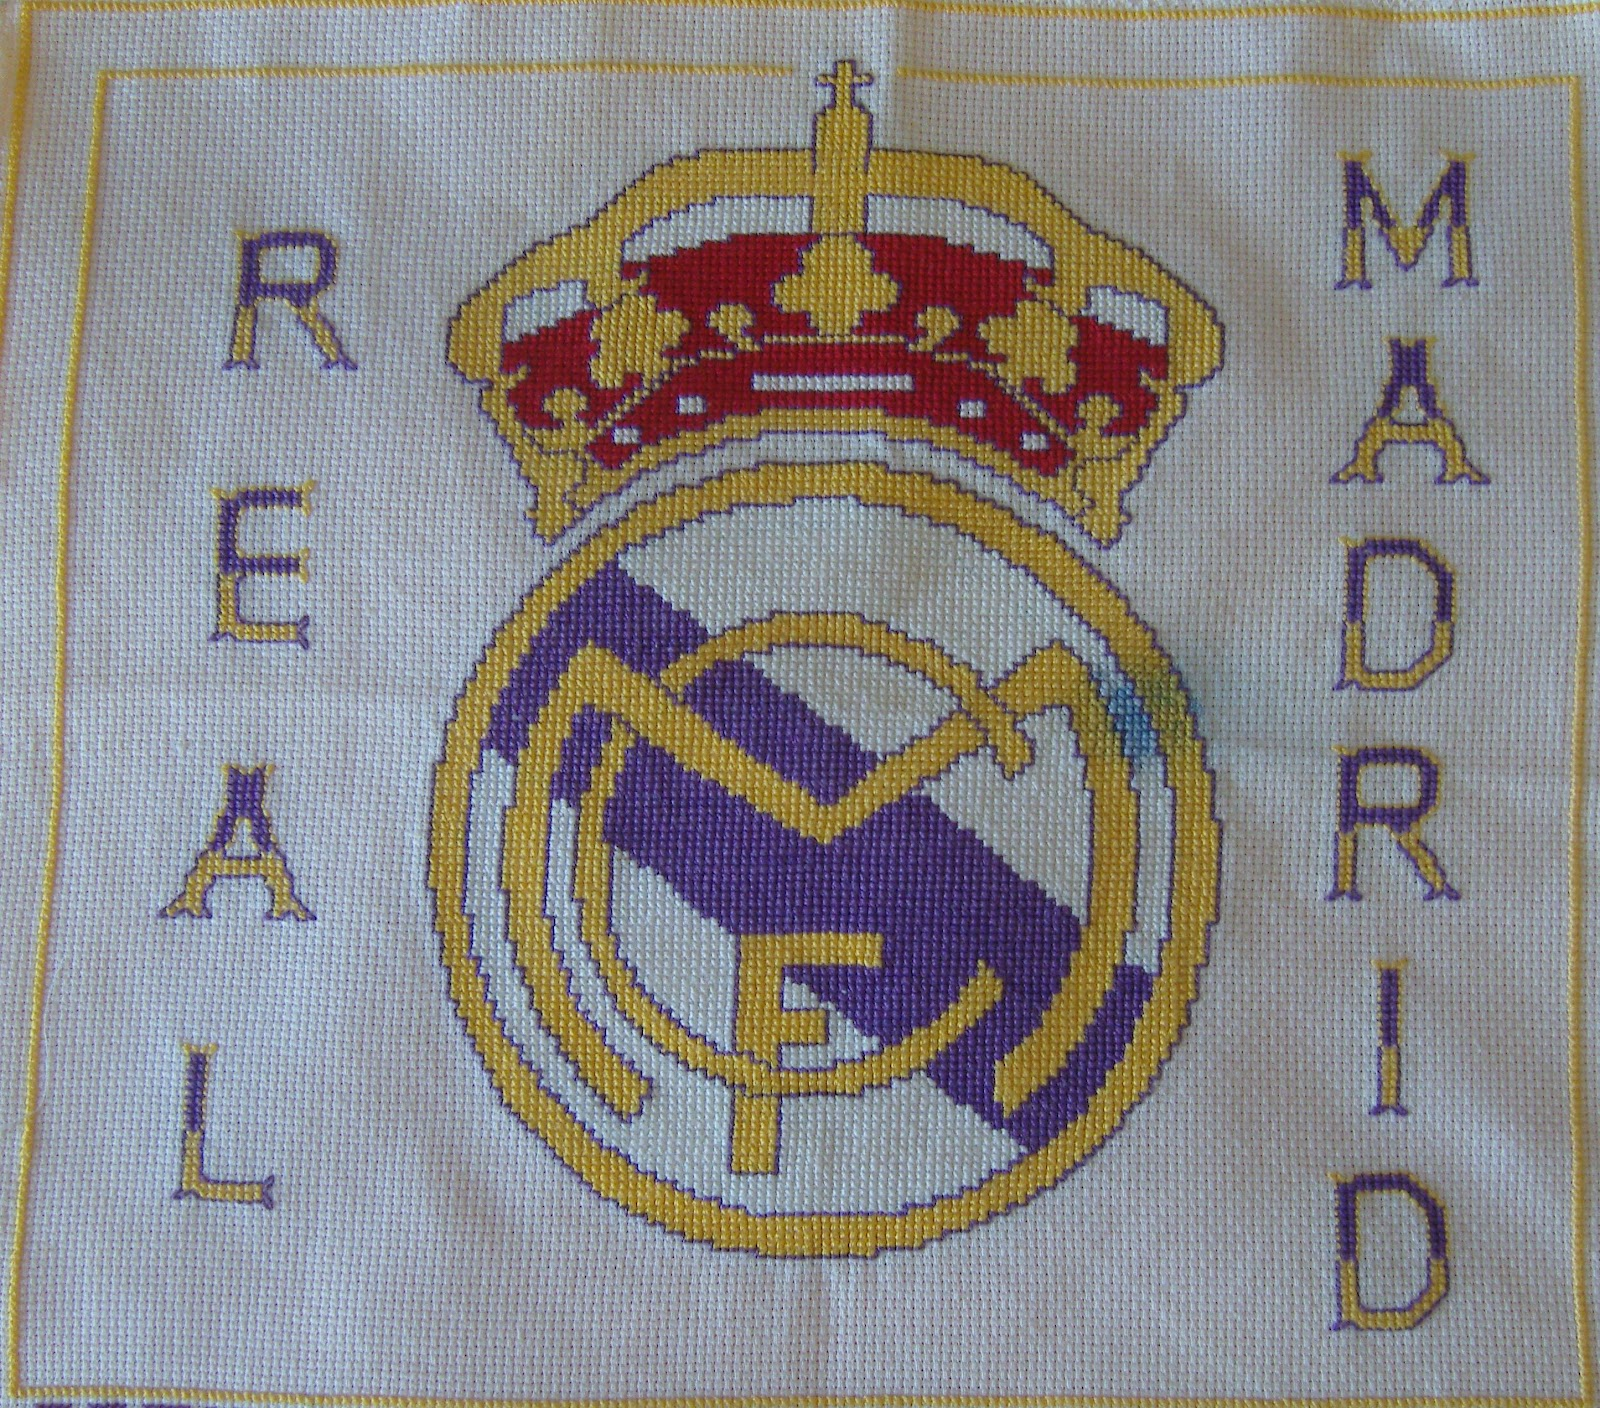 real madrid comment on this picture puntodecruzyganchillo escudo real ...